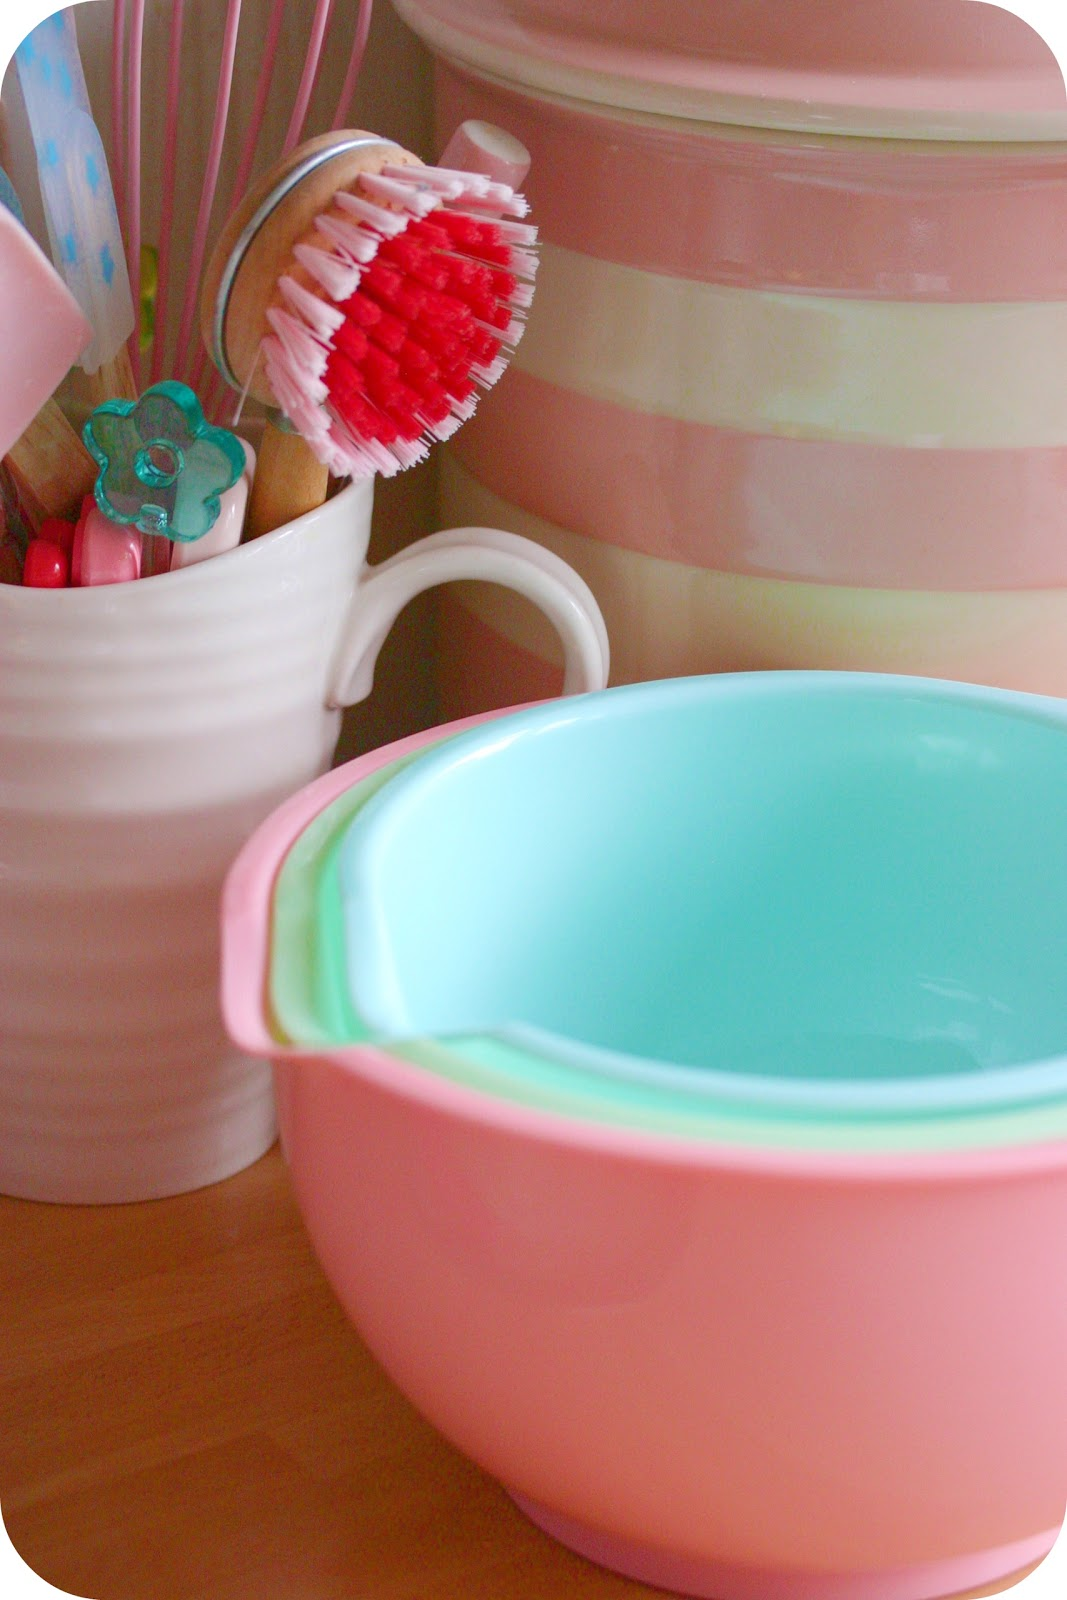 Coco rose diaries: pastel finds.....